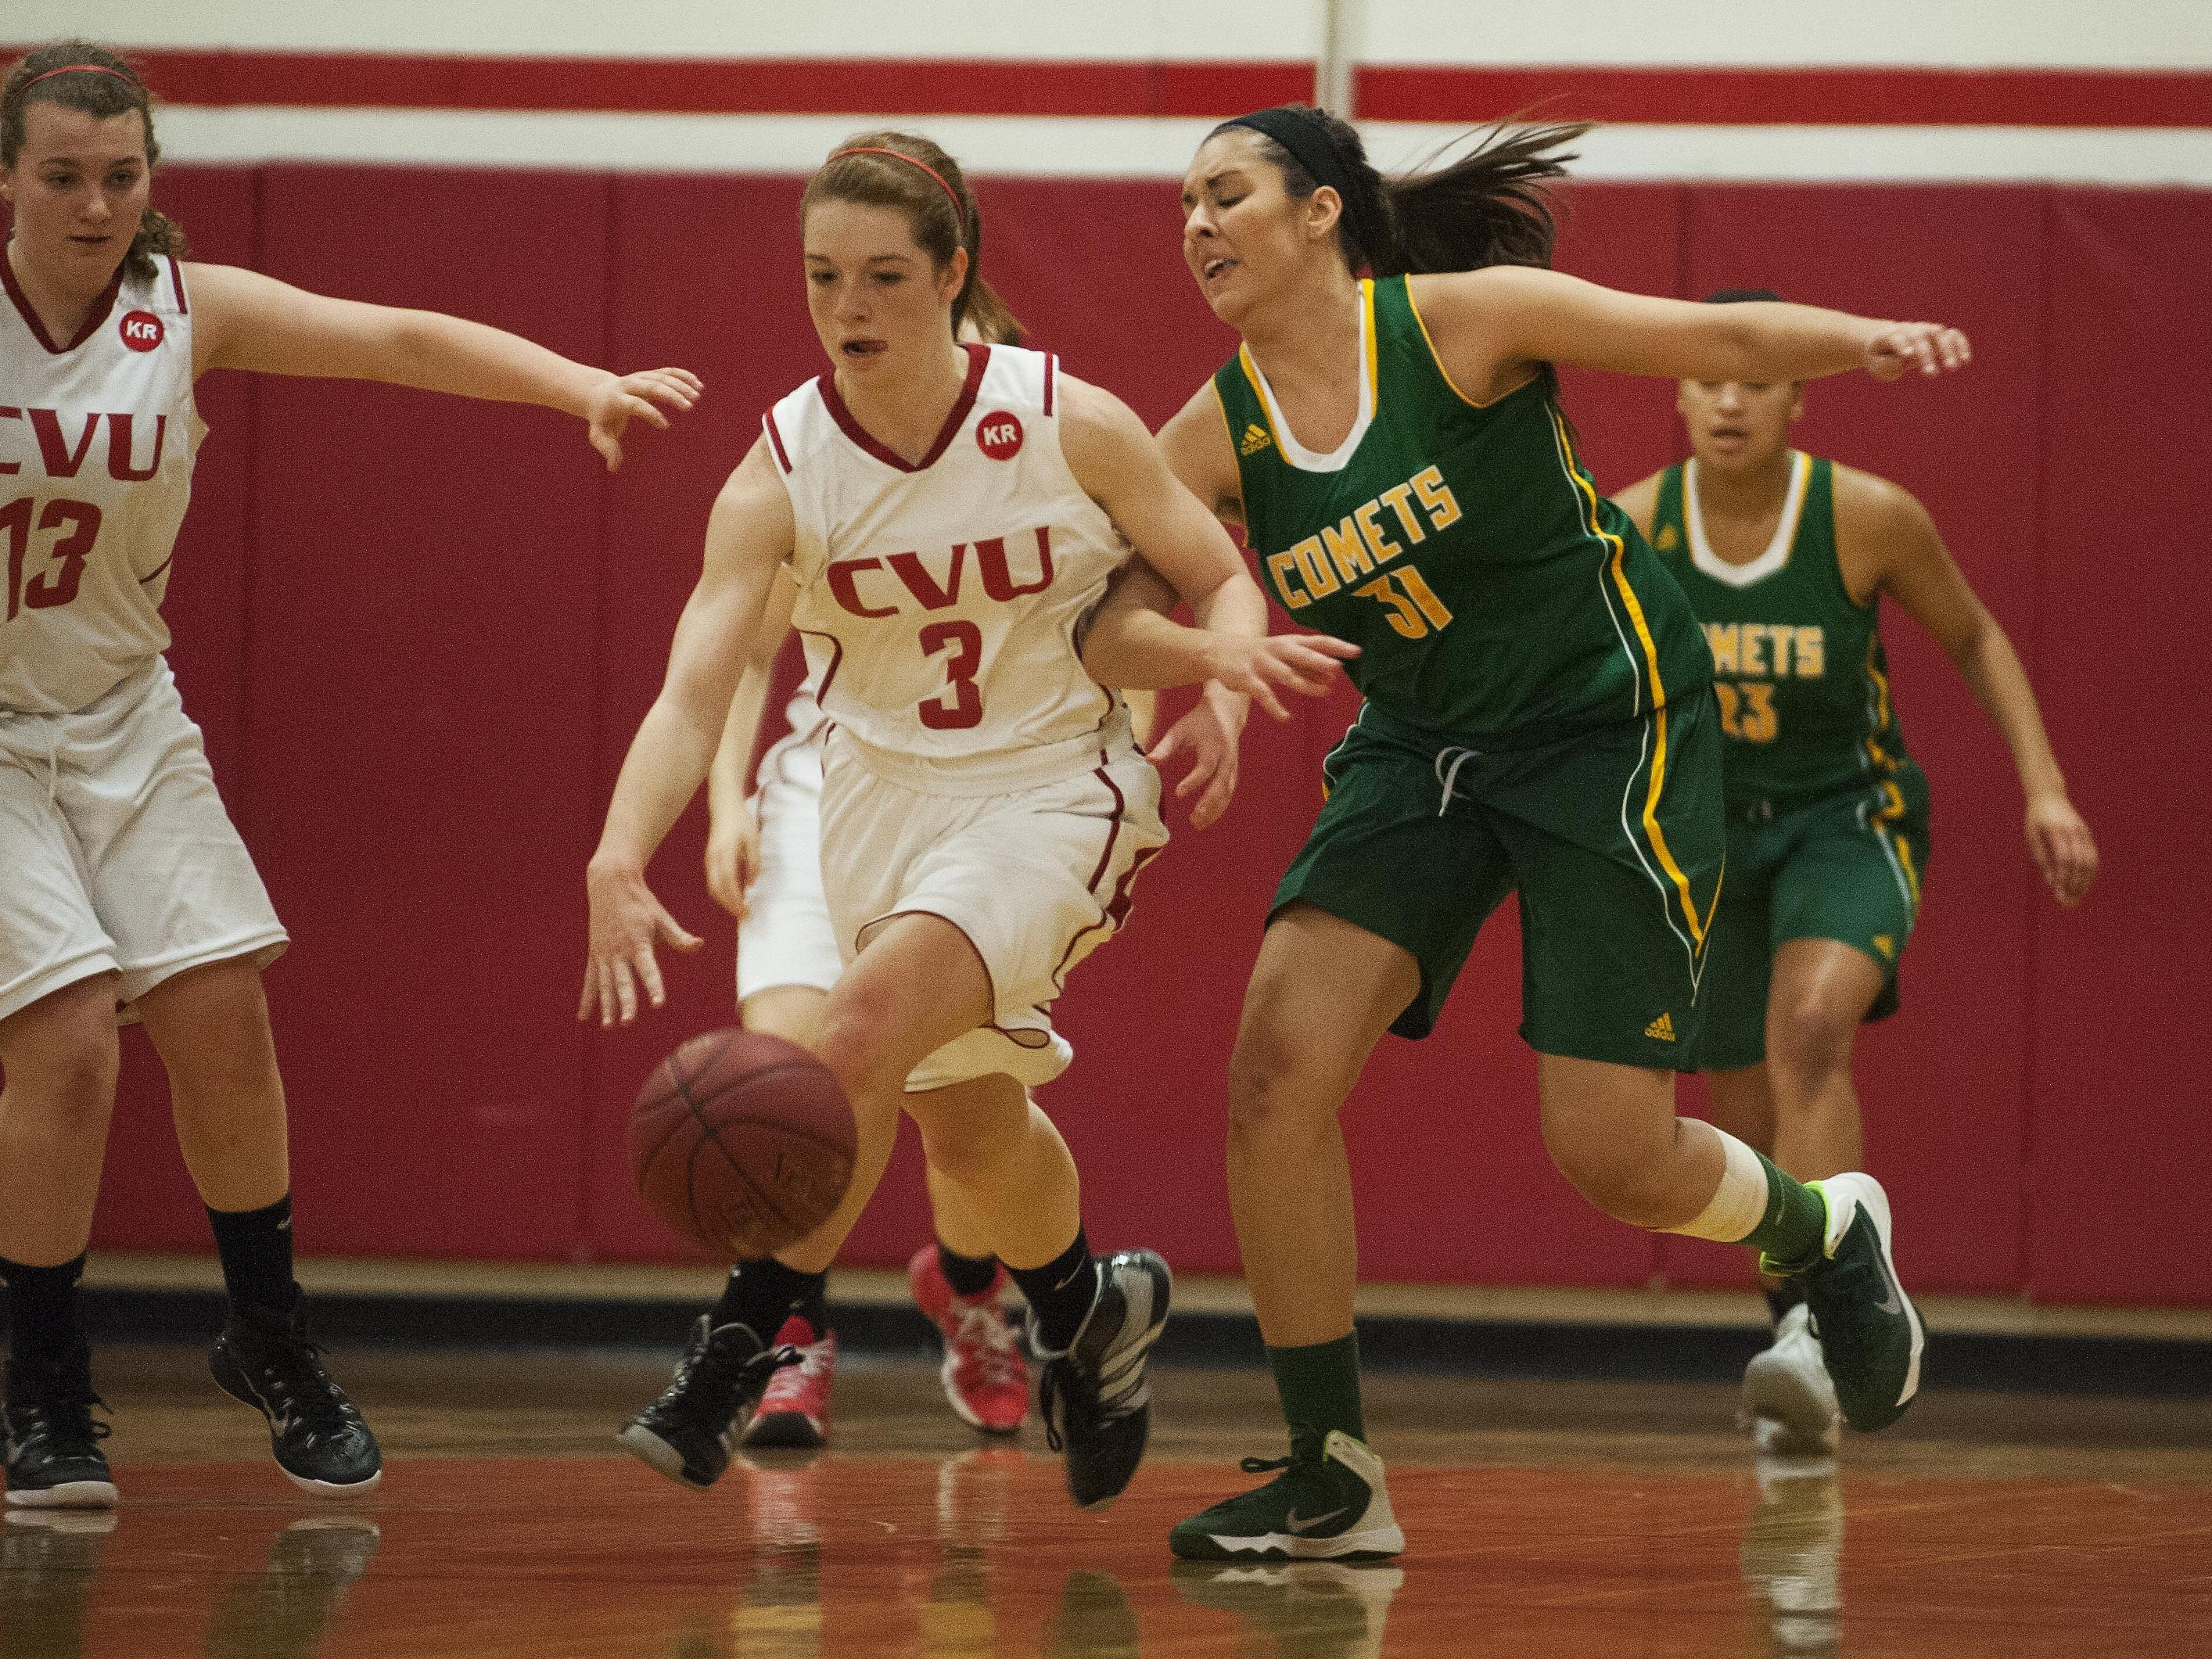 CVU's Sadie Otley (3) gets tangled up during a high school girls basketball game last season